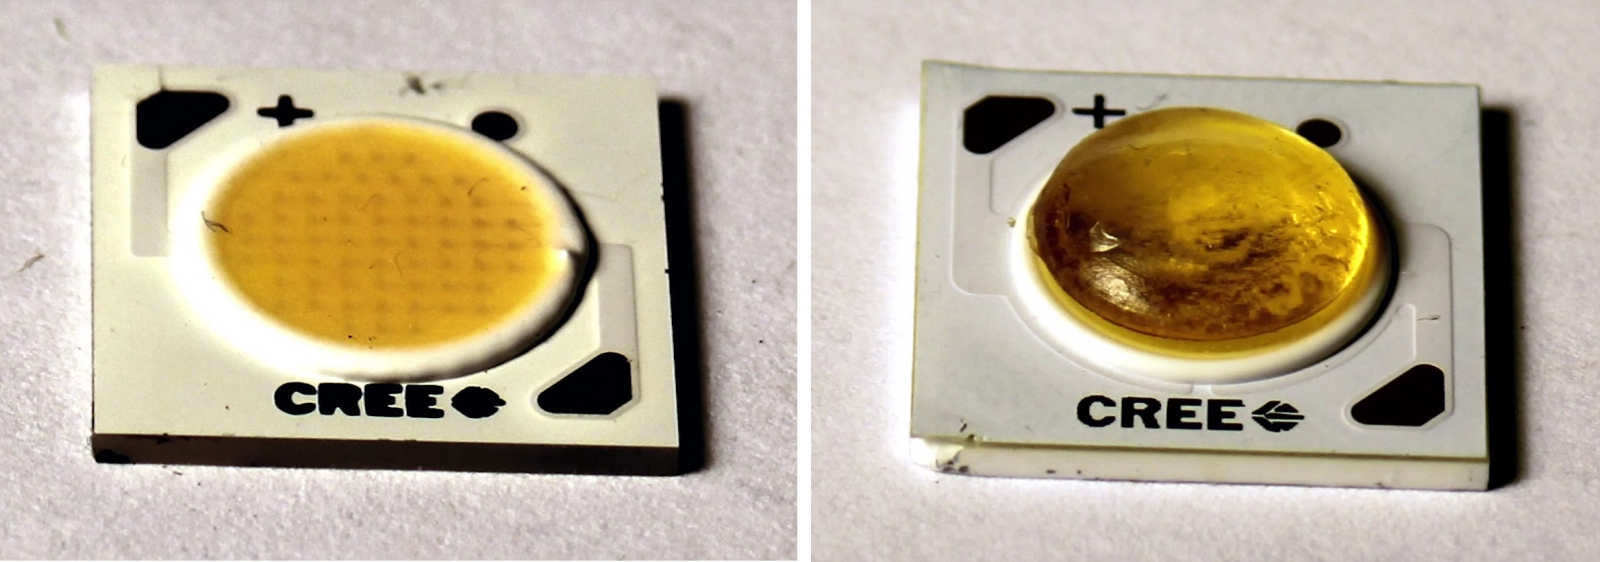 LED lenses 3D printed using MIT's MultiFab